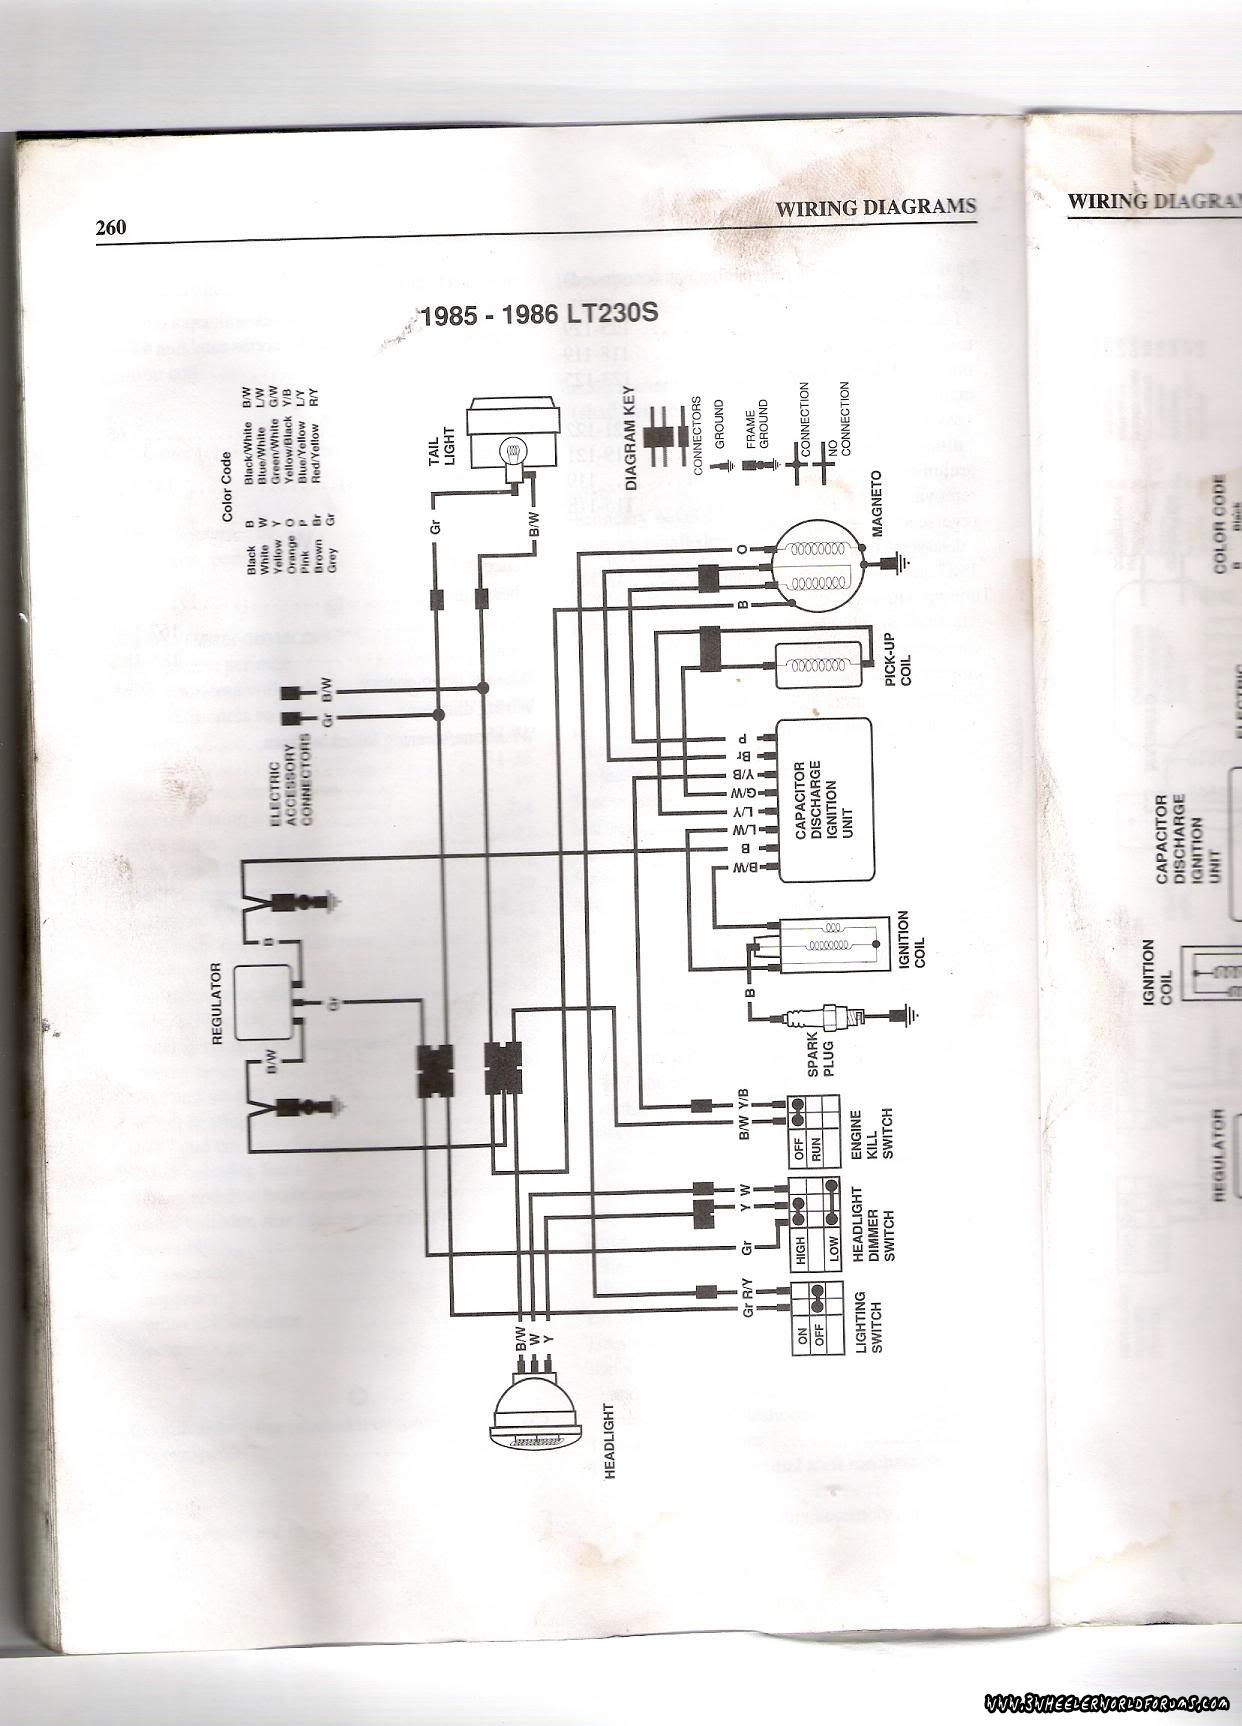 hight resolution of suzuki 300 wiring diagram wiring diagram paper 1999 suzuki king quad 300 wiring diagram suzuki lt